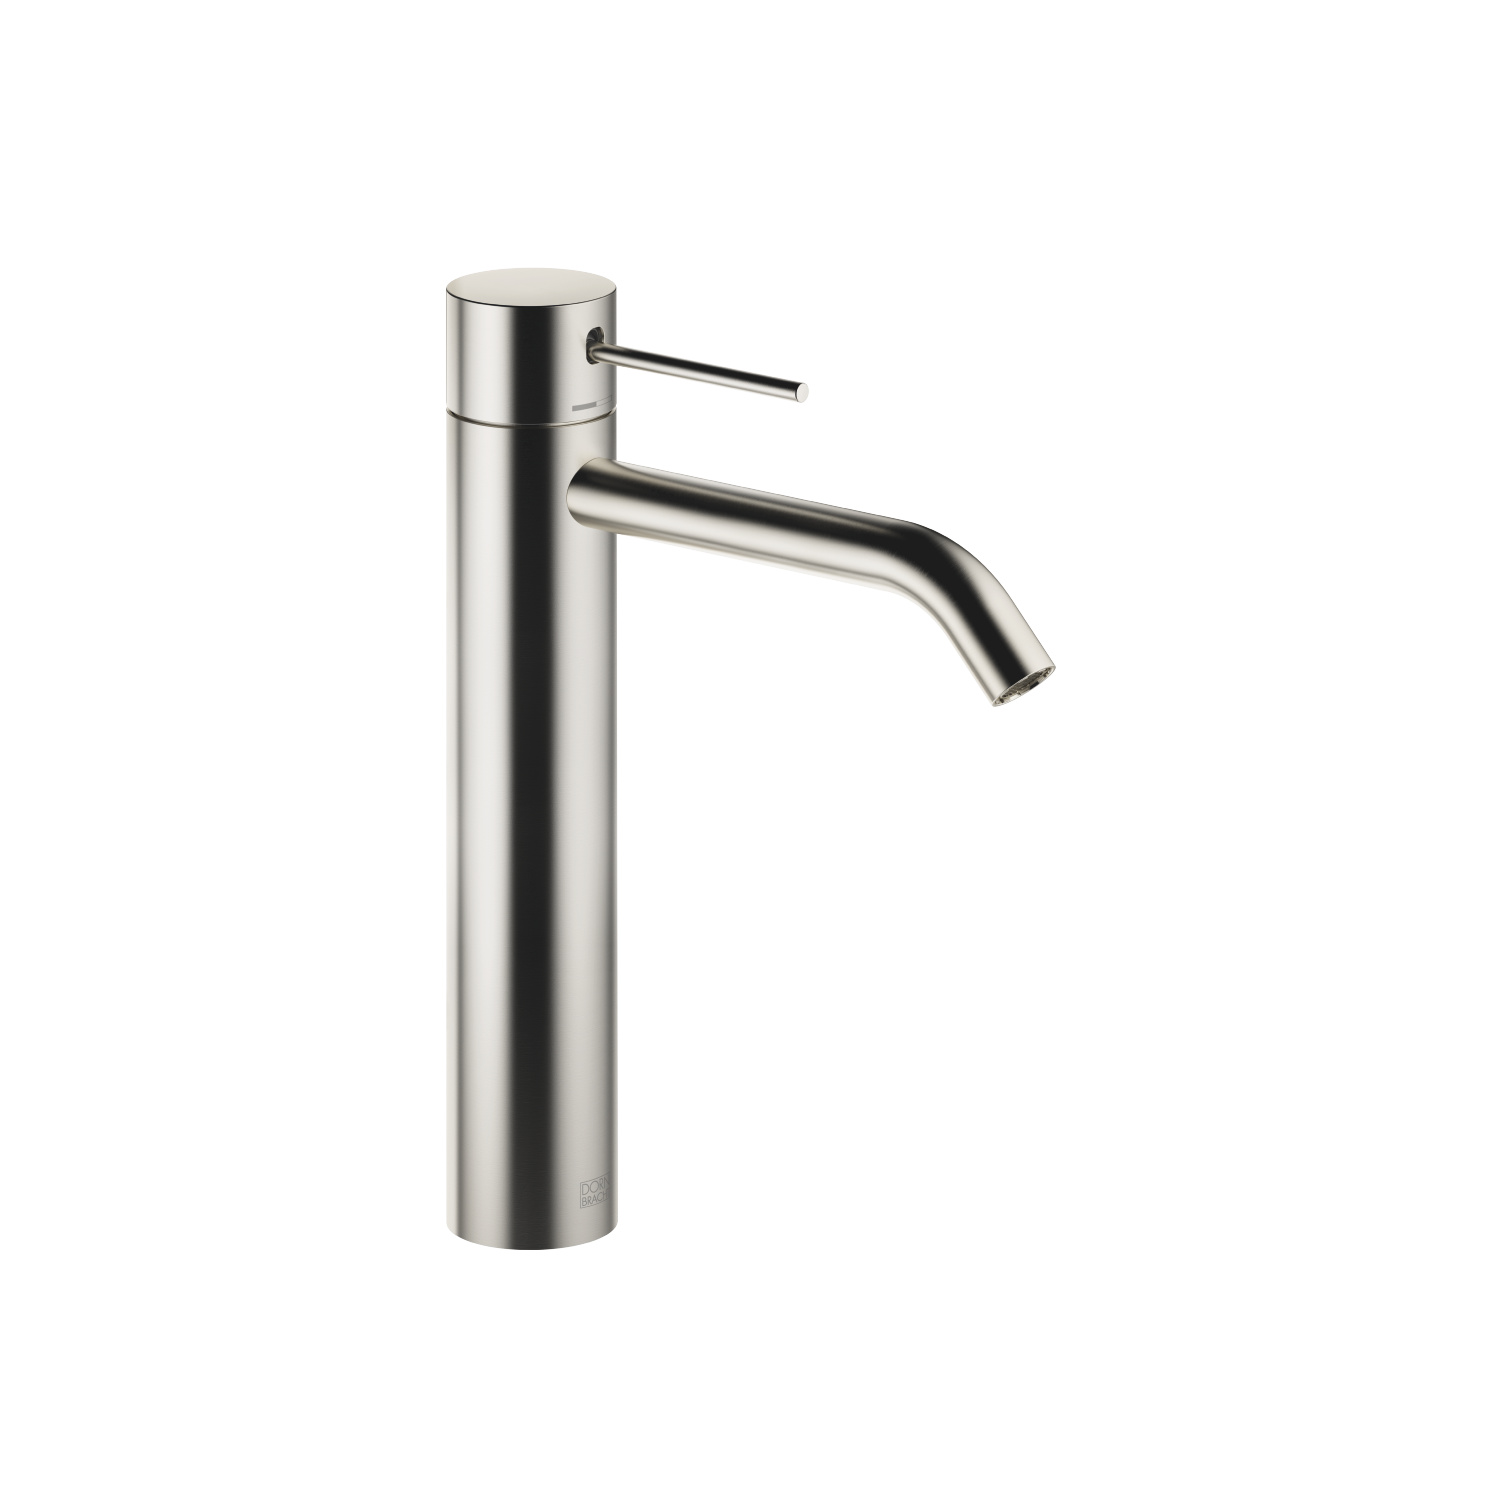 META SLIM Single-lever basin mixer with raised base without pop-up waste - platinum matt